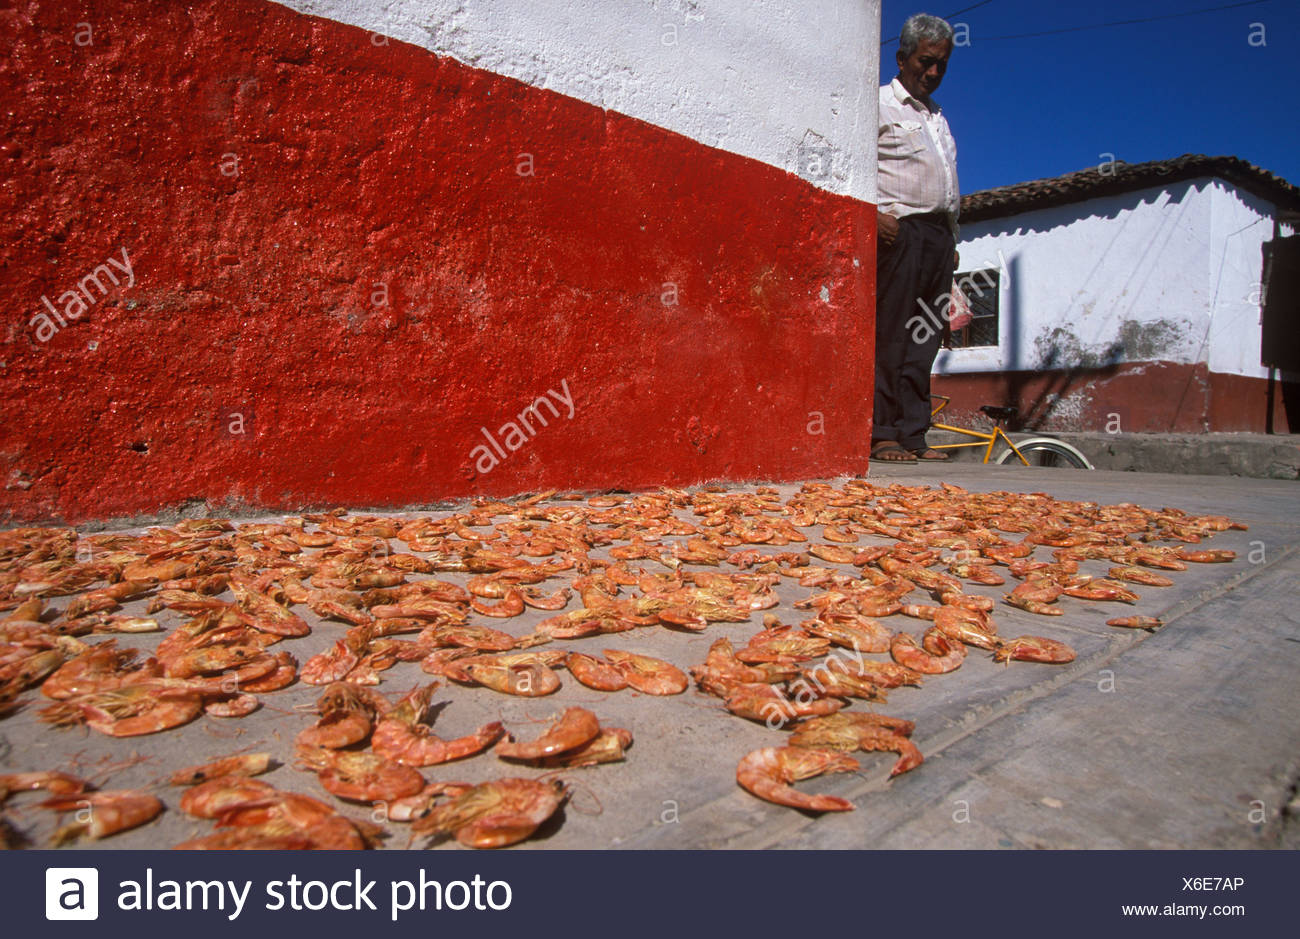 Camarones, crabs laid out to dry, Mexcaltitan Island, Nayarit, Mexico Stock Photo